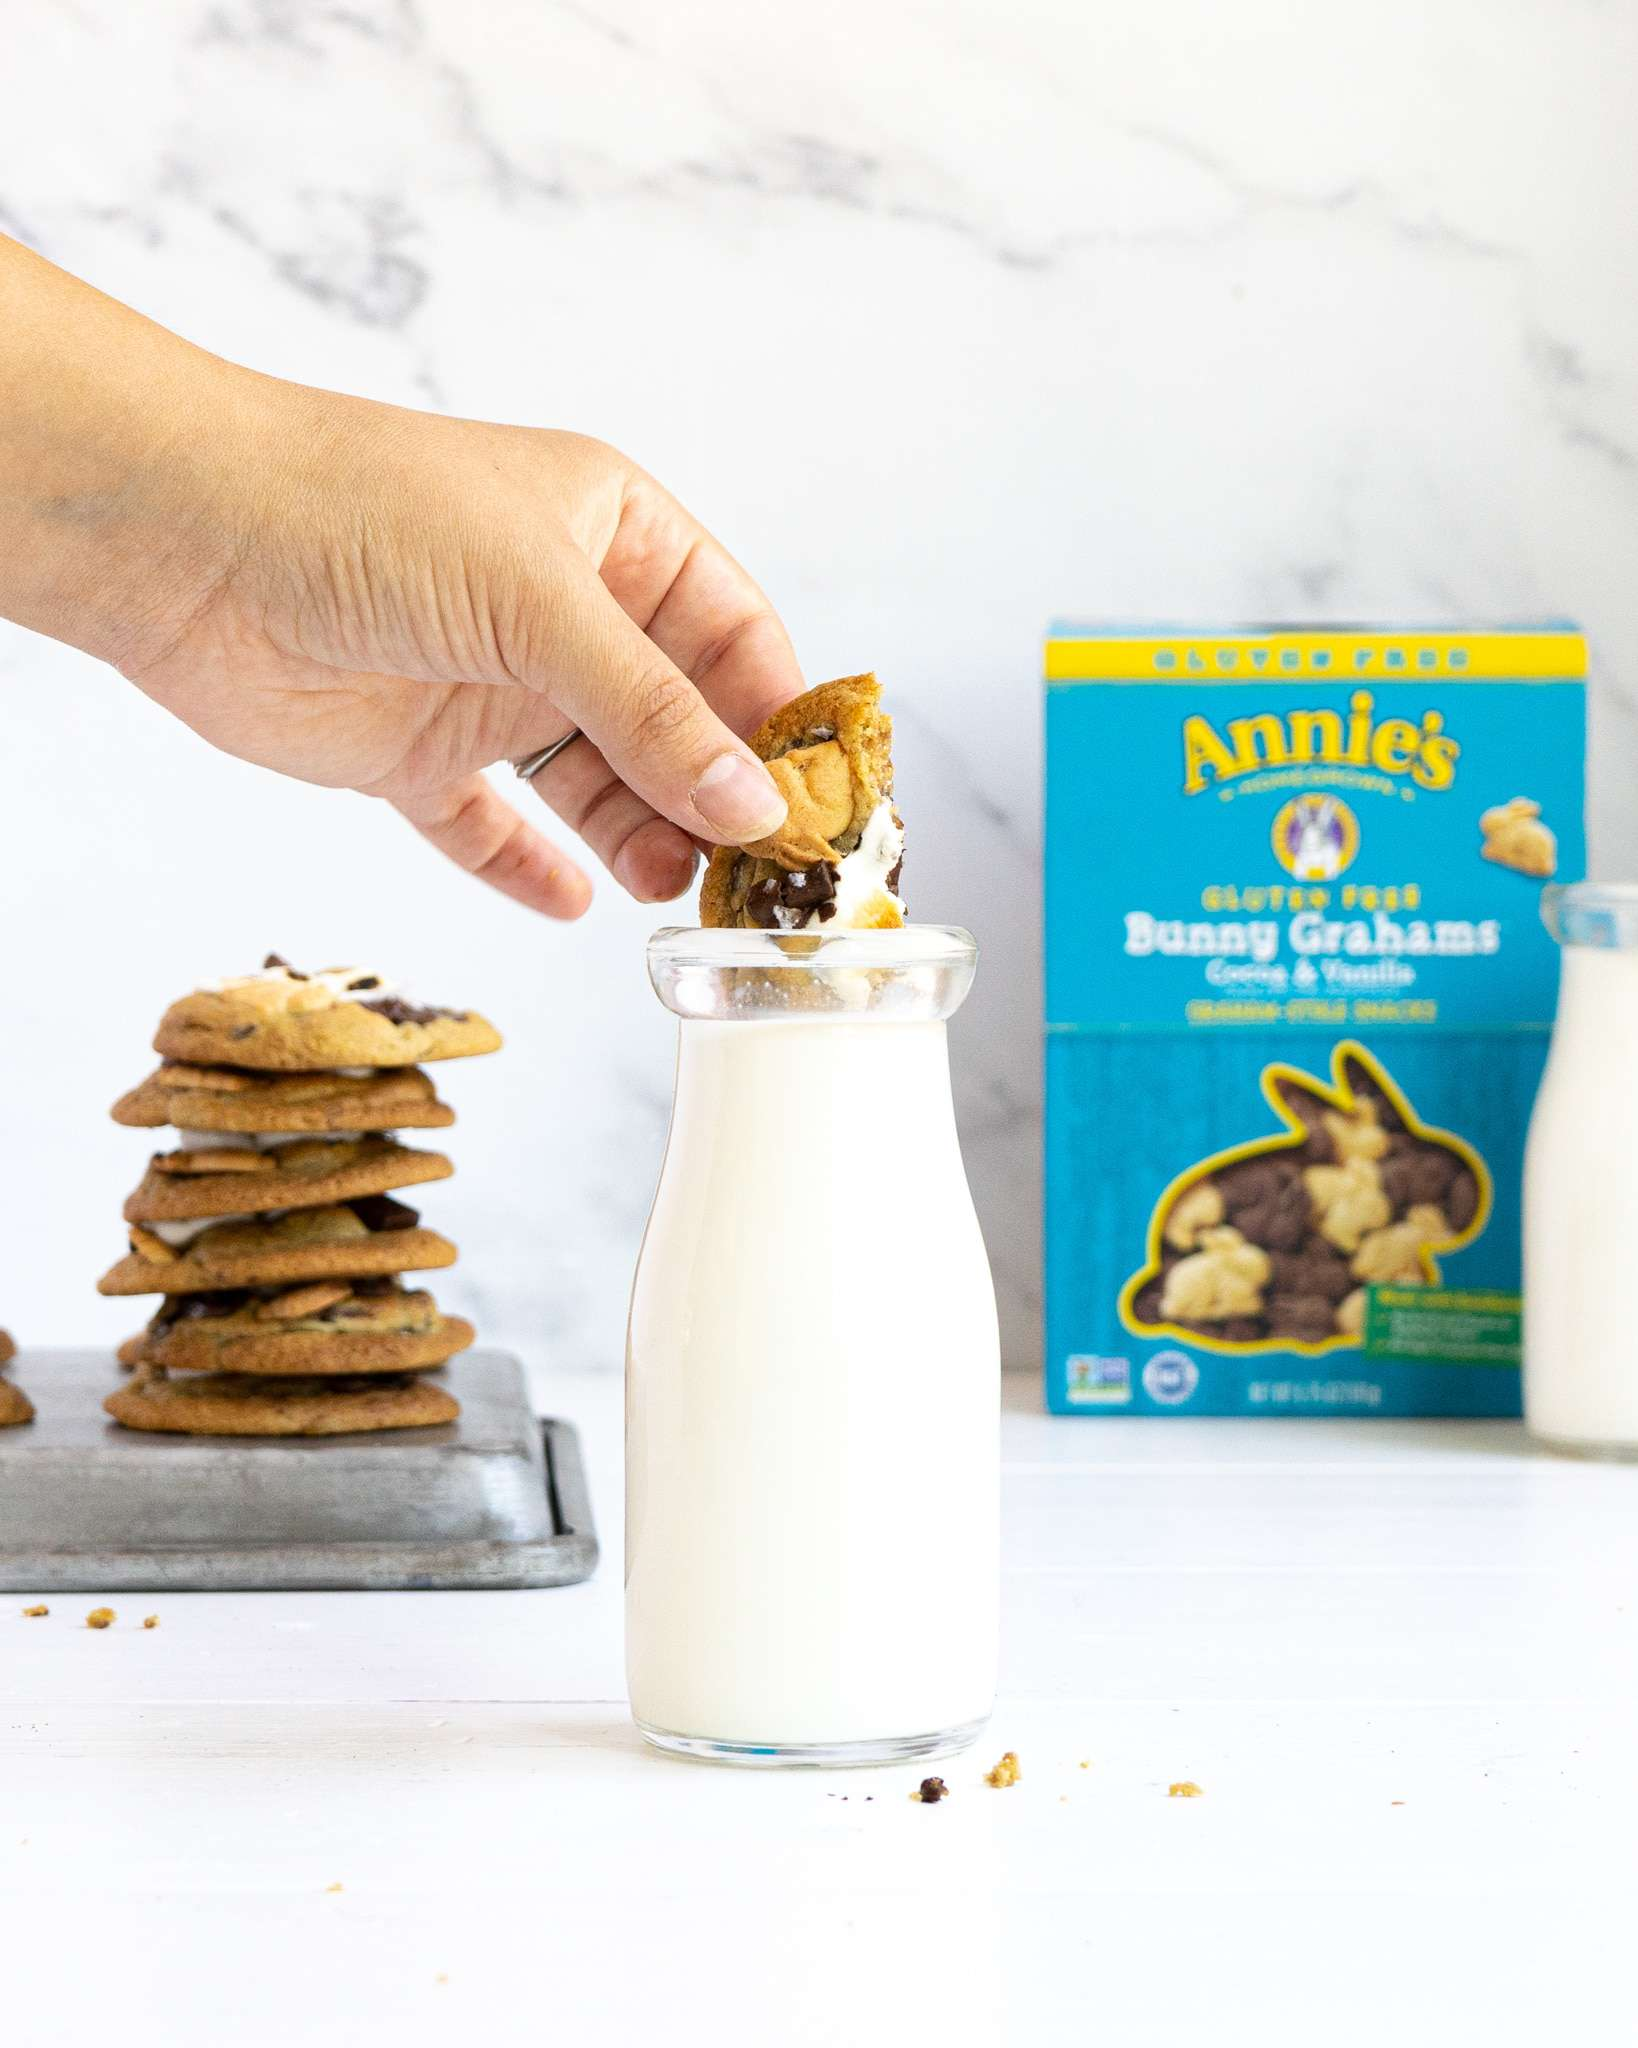 A s'mores cookie dipping into a jar of milk with an Annie's box in the background.